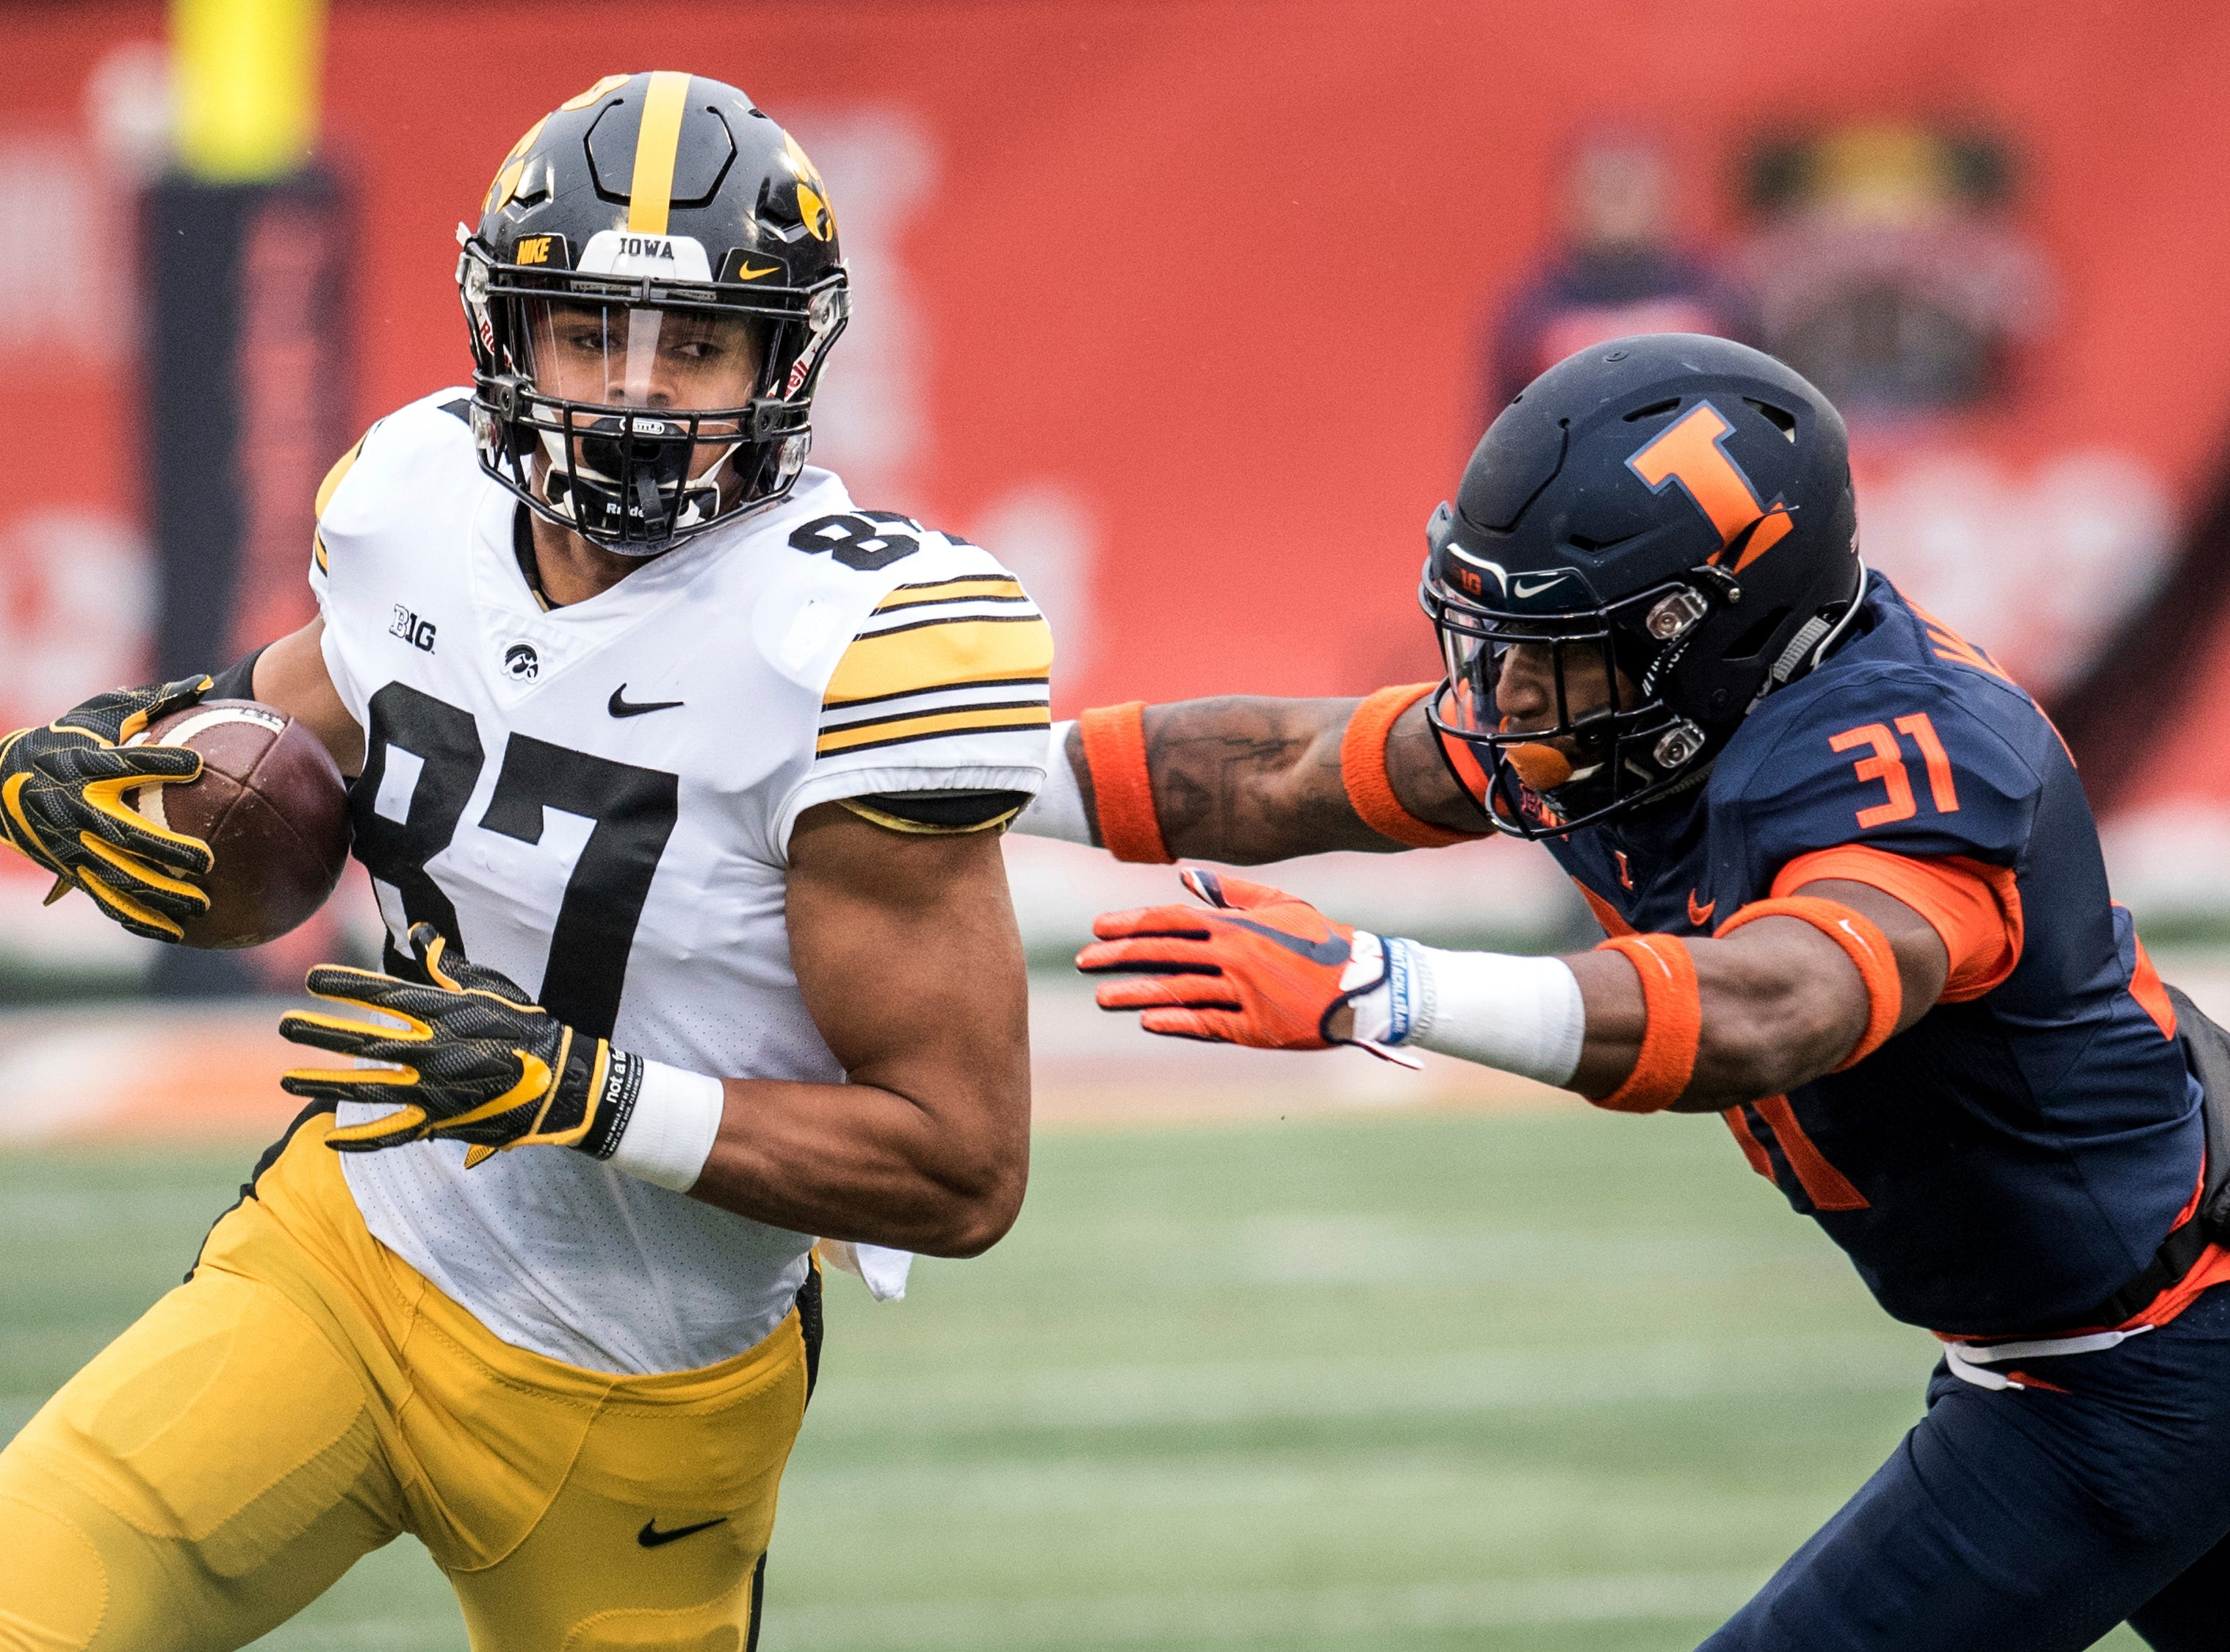 Iowa 63, Illinois 0: Here's what we learned